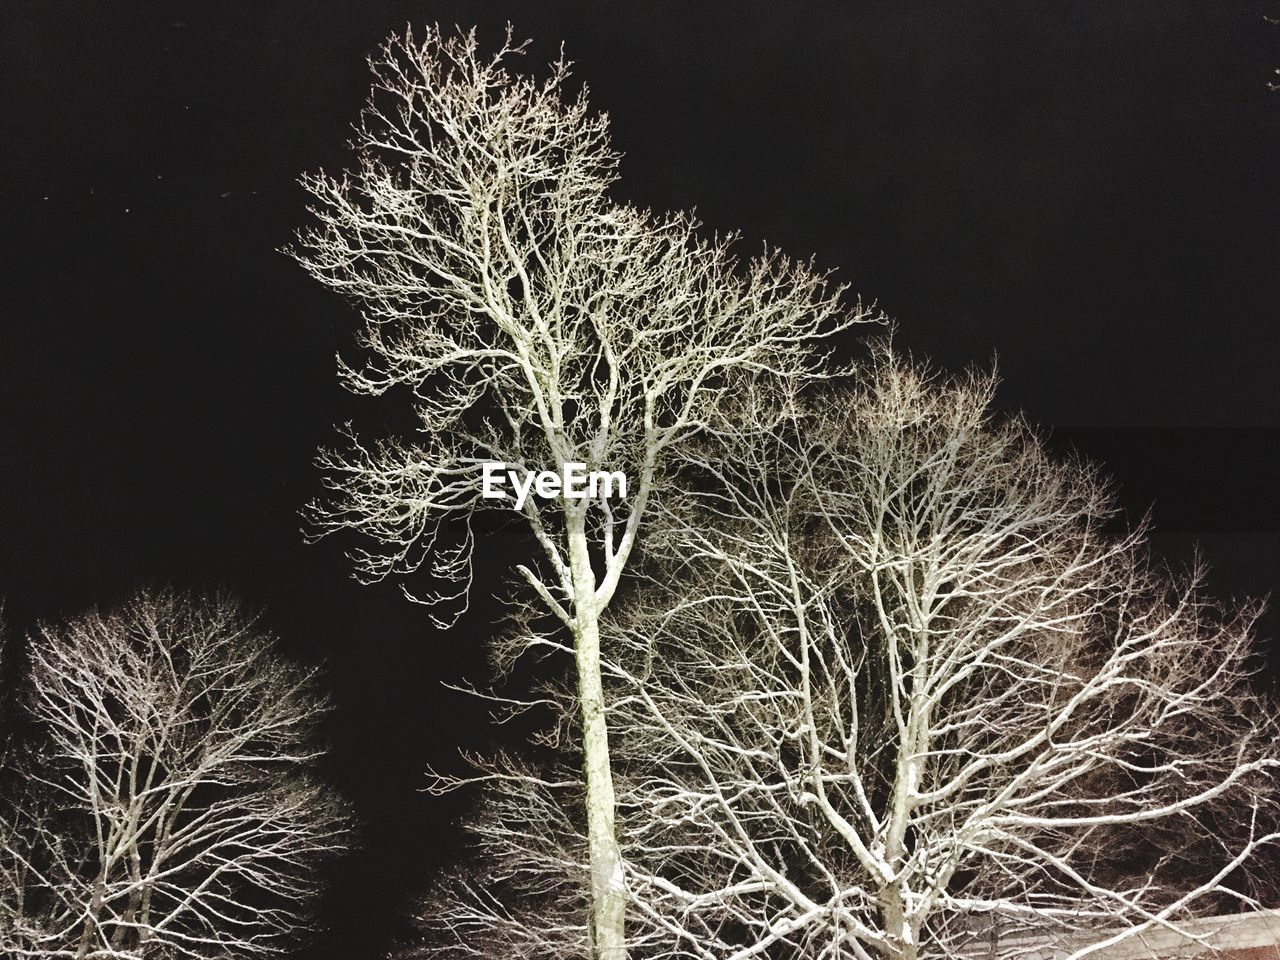 night, nature, no people, illuminated, beauty in nature, growth, plant, outdoors, tree, bare tree, sky, close-up, clear sky, black background